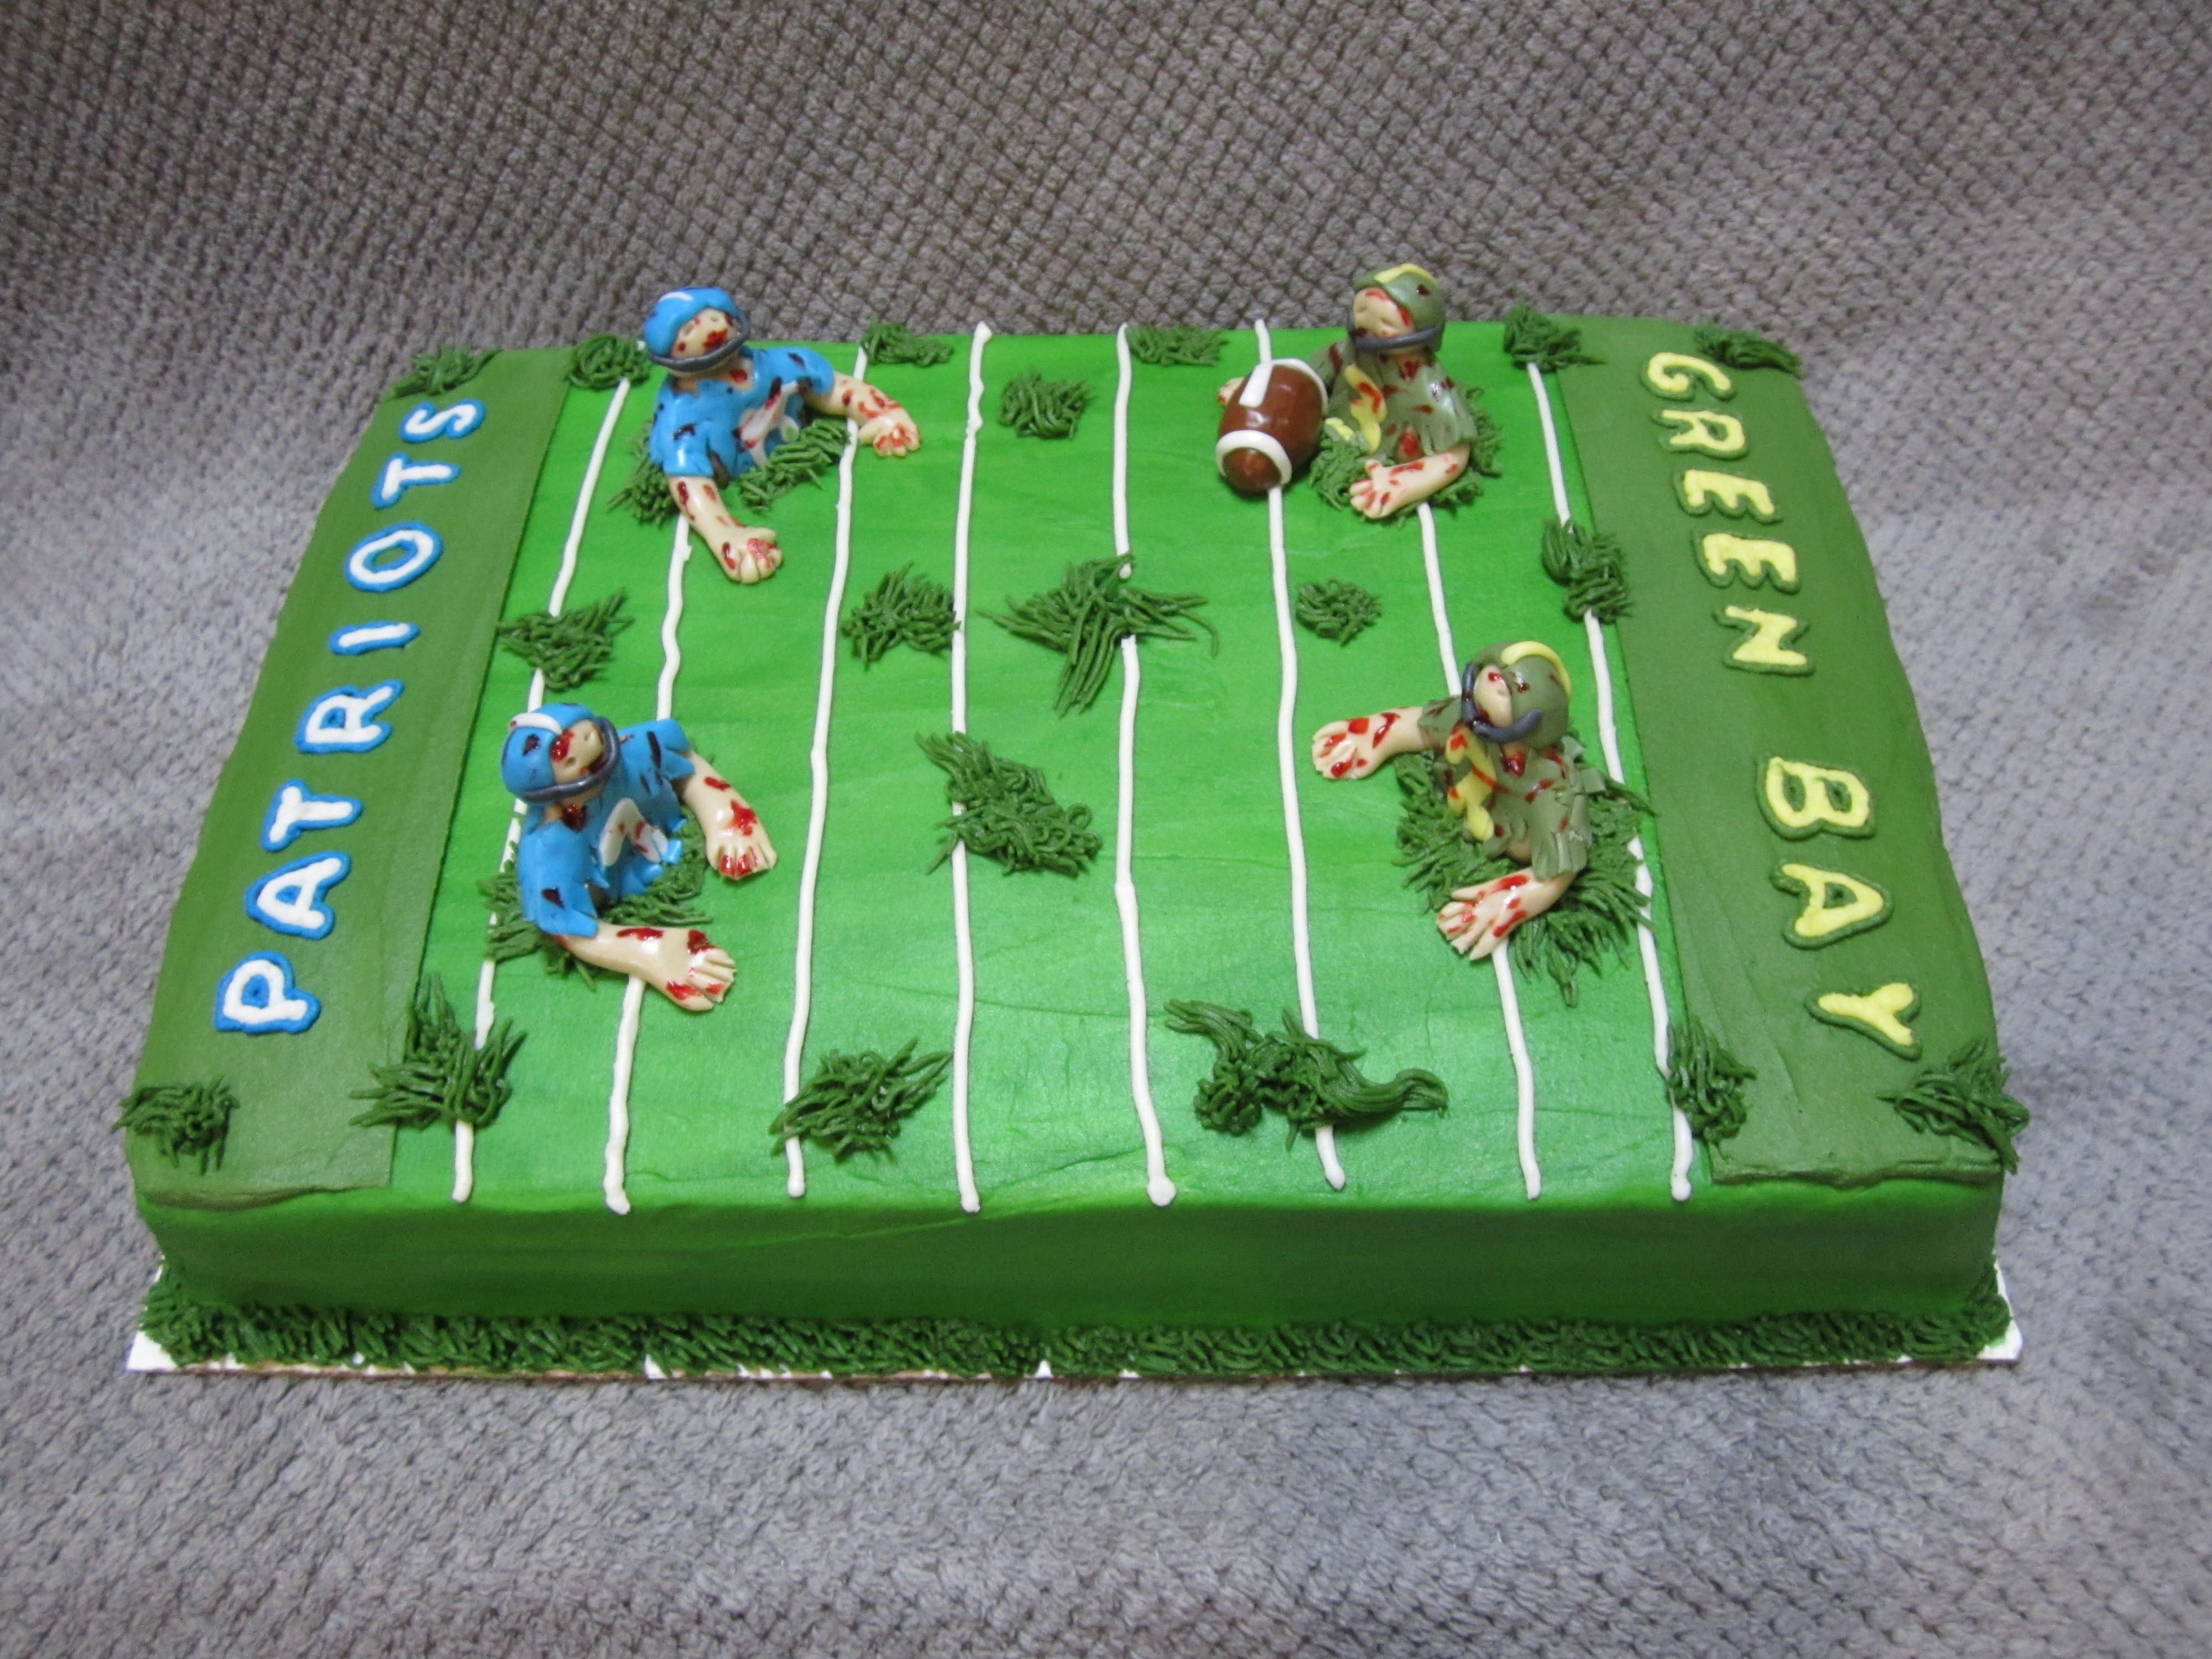 Zombie Football Cake Featuring Greenbay Packers Vs New England Patriots Green Bay Packers Cake Patriotic Cake Cake